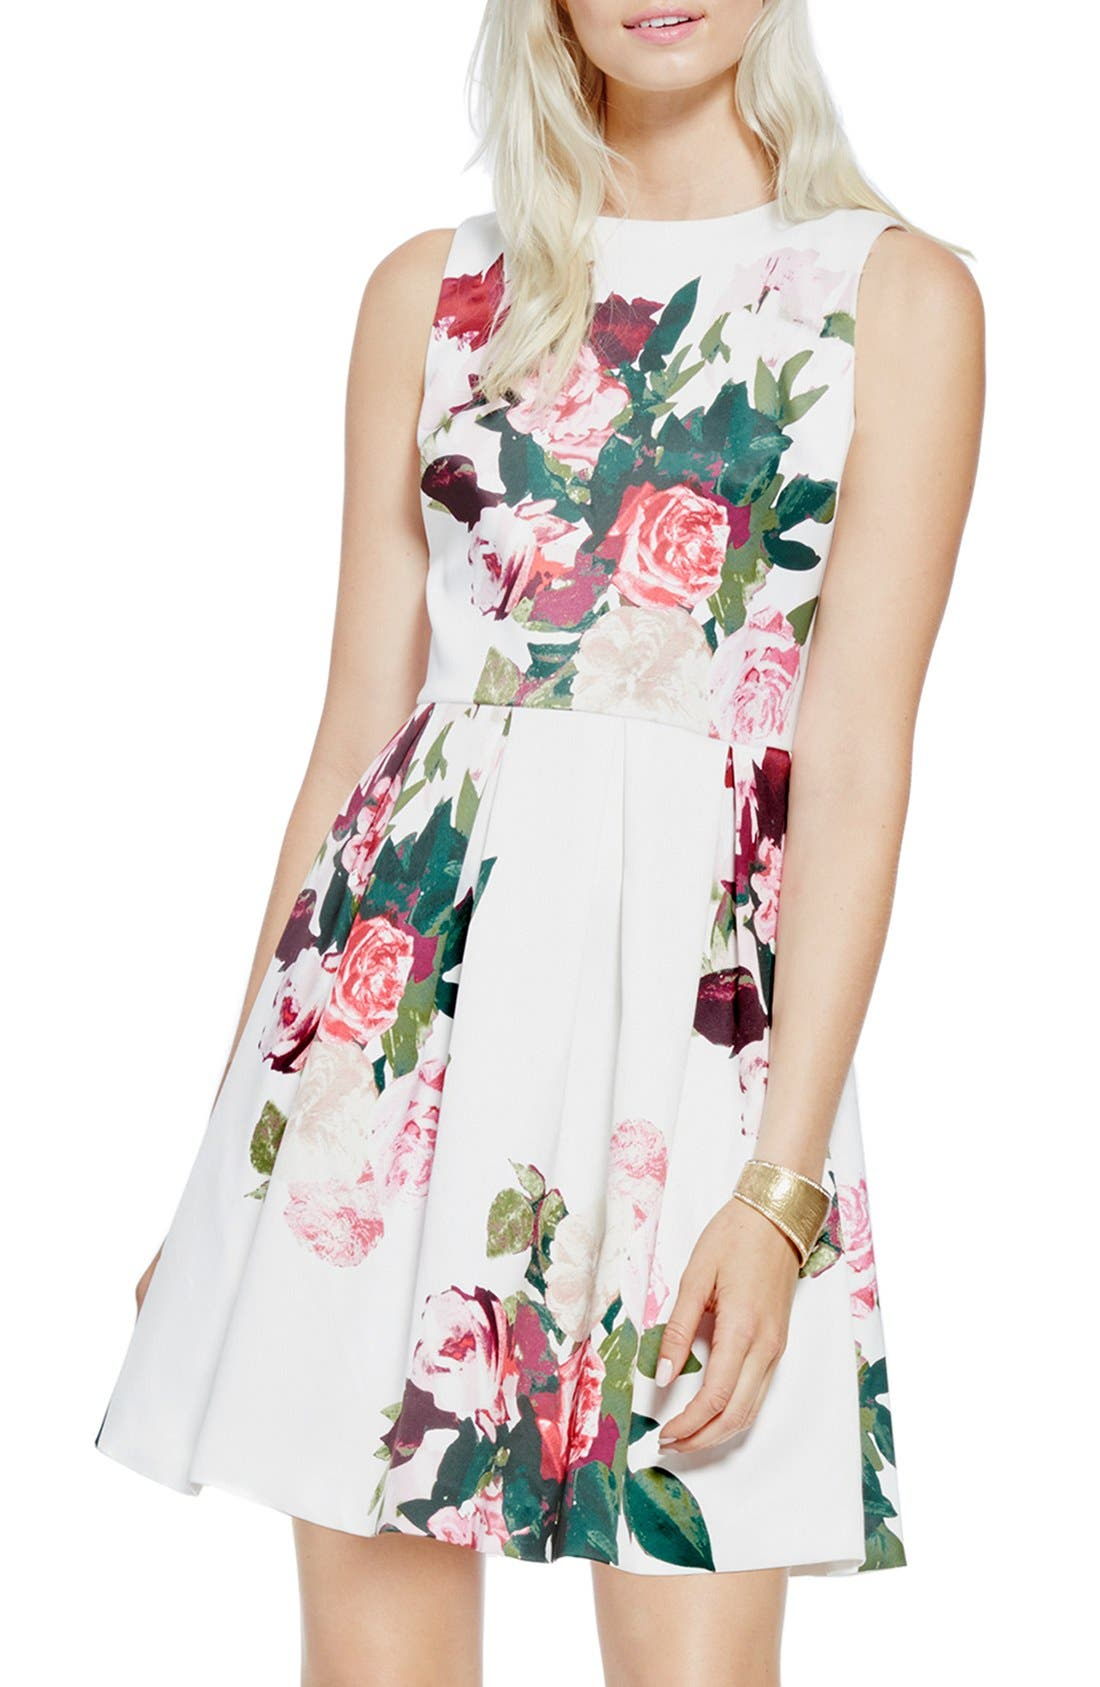 Main Image - Vince Camuto 'Rose Bouquet' Fit & Flare Dress